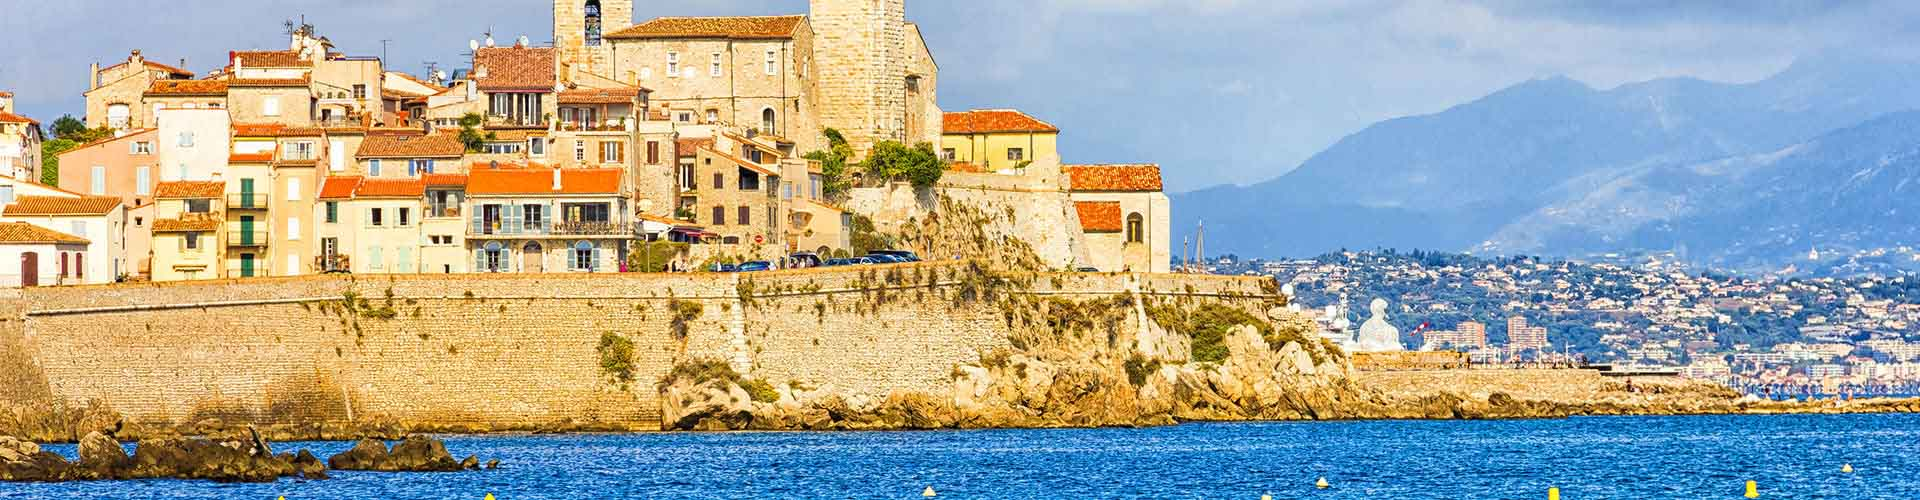 Antibes – Hostels in Antibes. Maps for Antibes, Photos and Reviews for each hostel in Antibes.